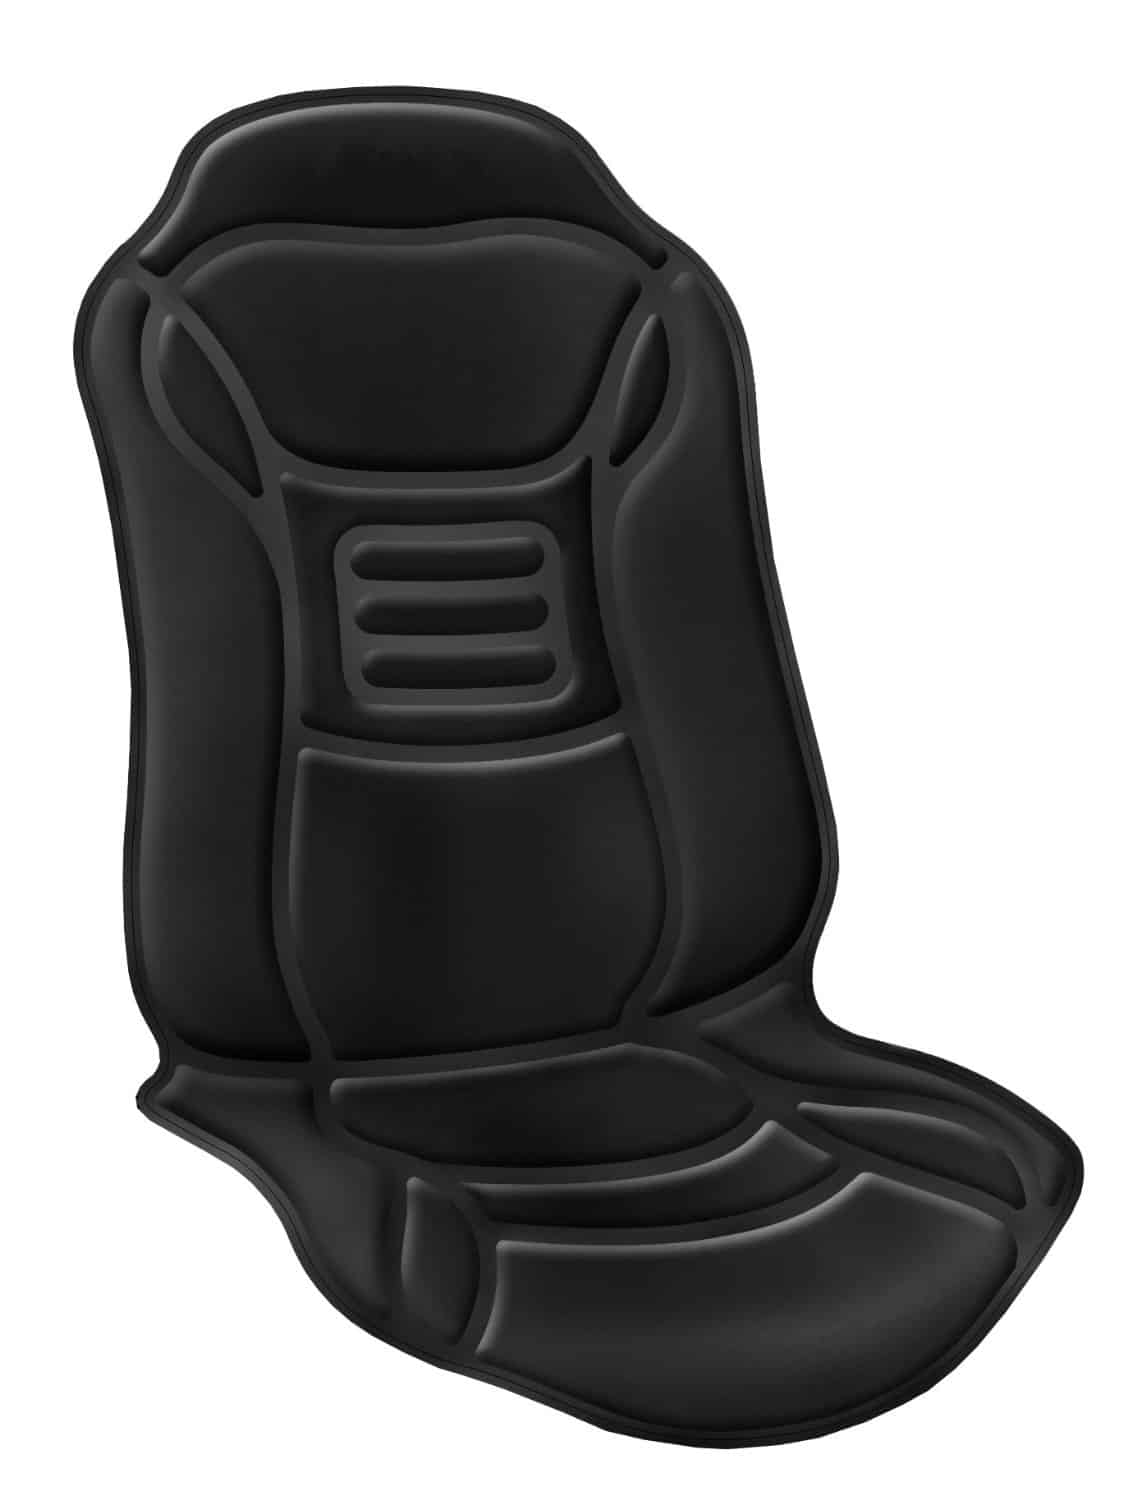 Comfort 60-2926 6-Motor Massage Seat Cushion with Heat